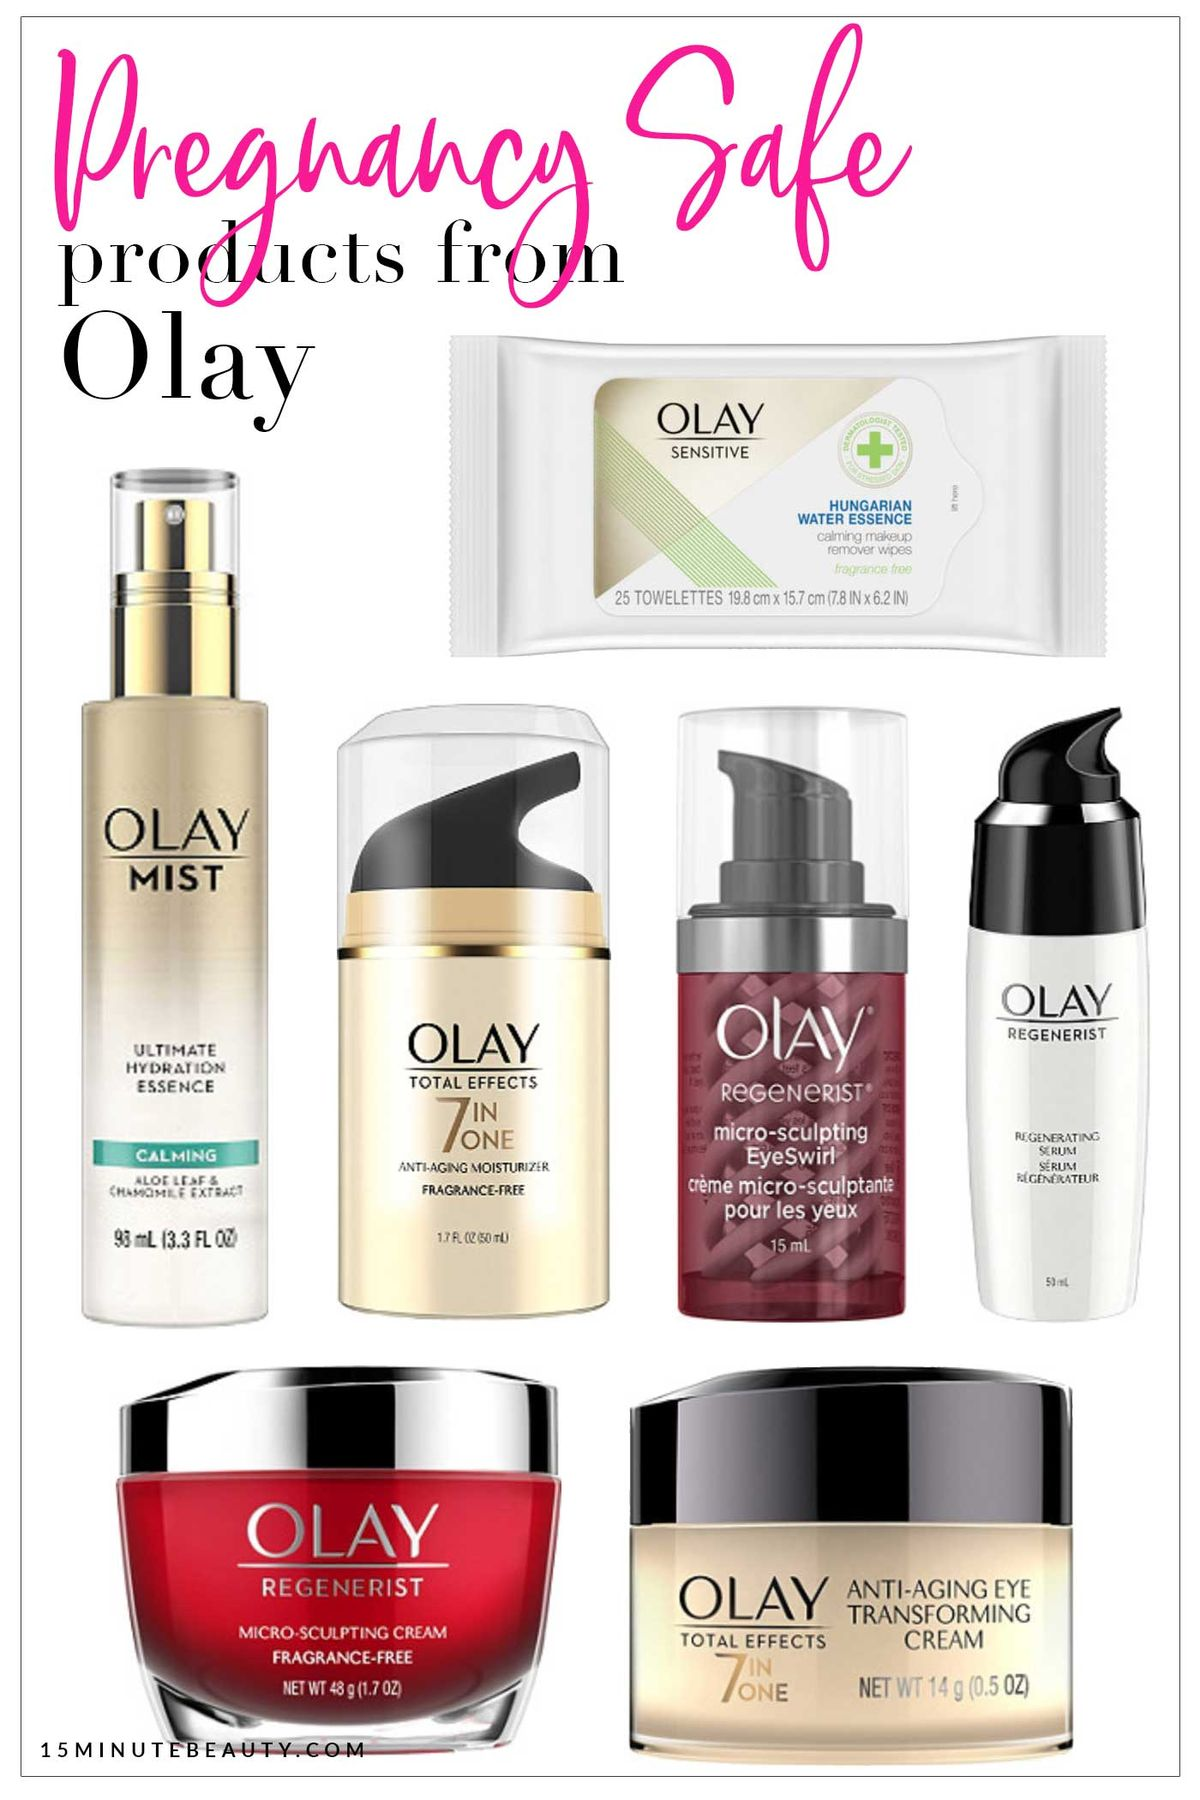 Pregnancy Safe Skincare from Olay